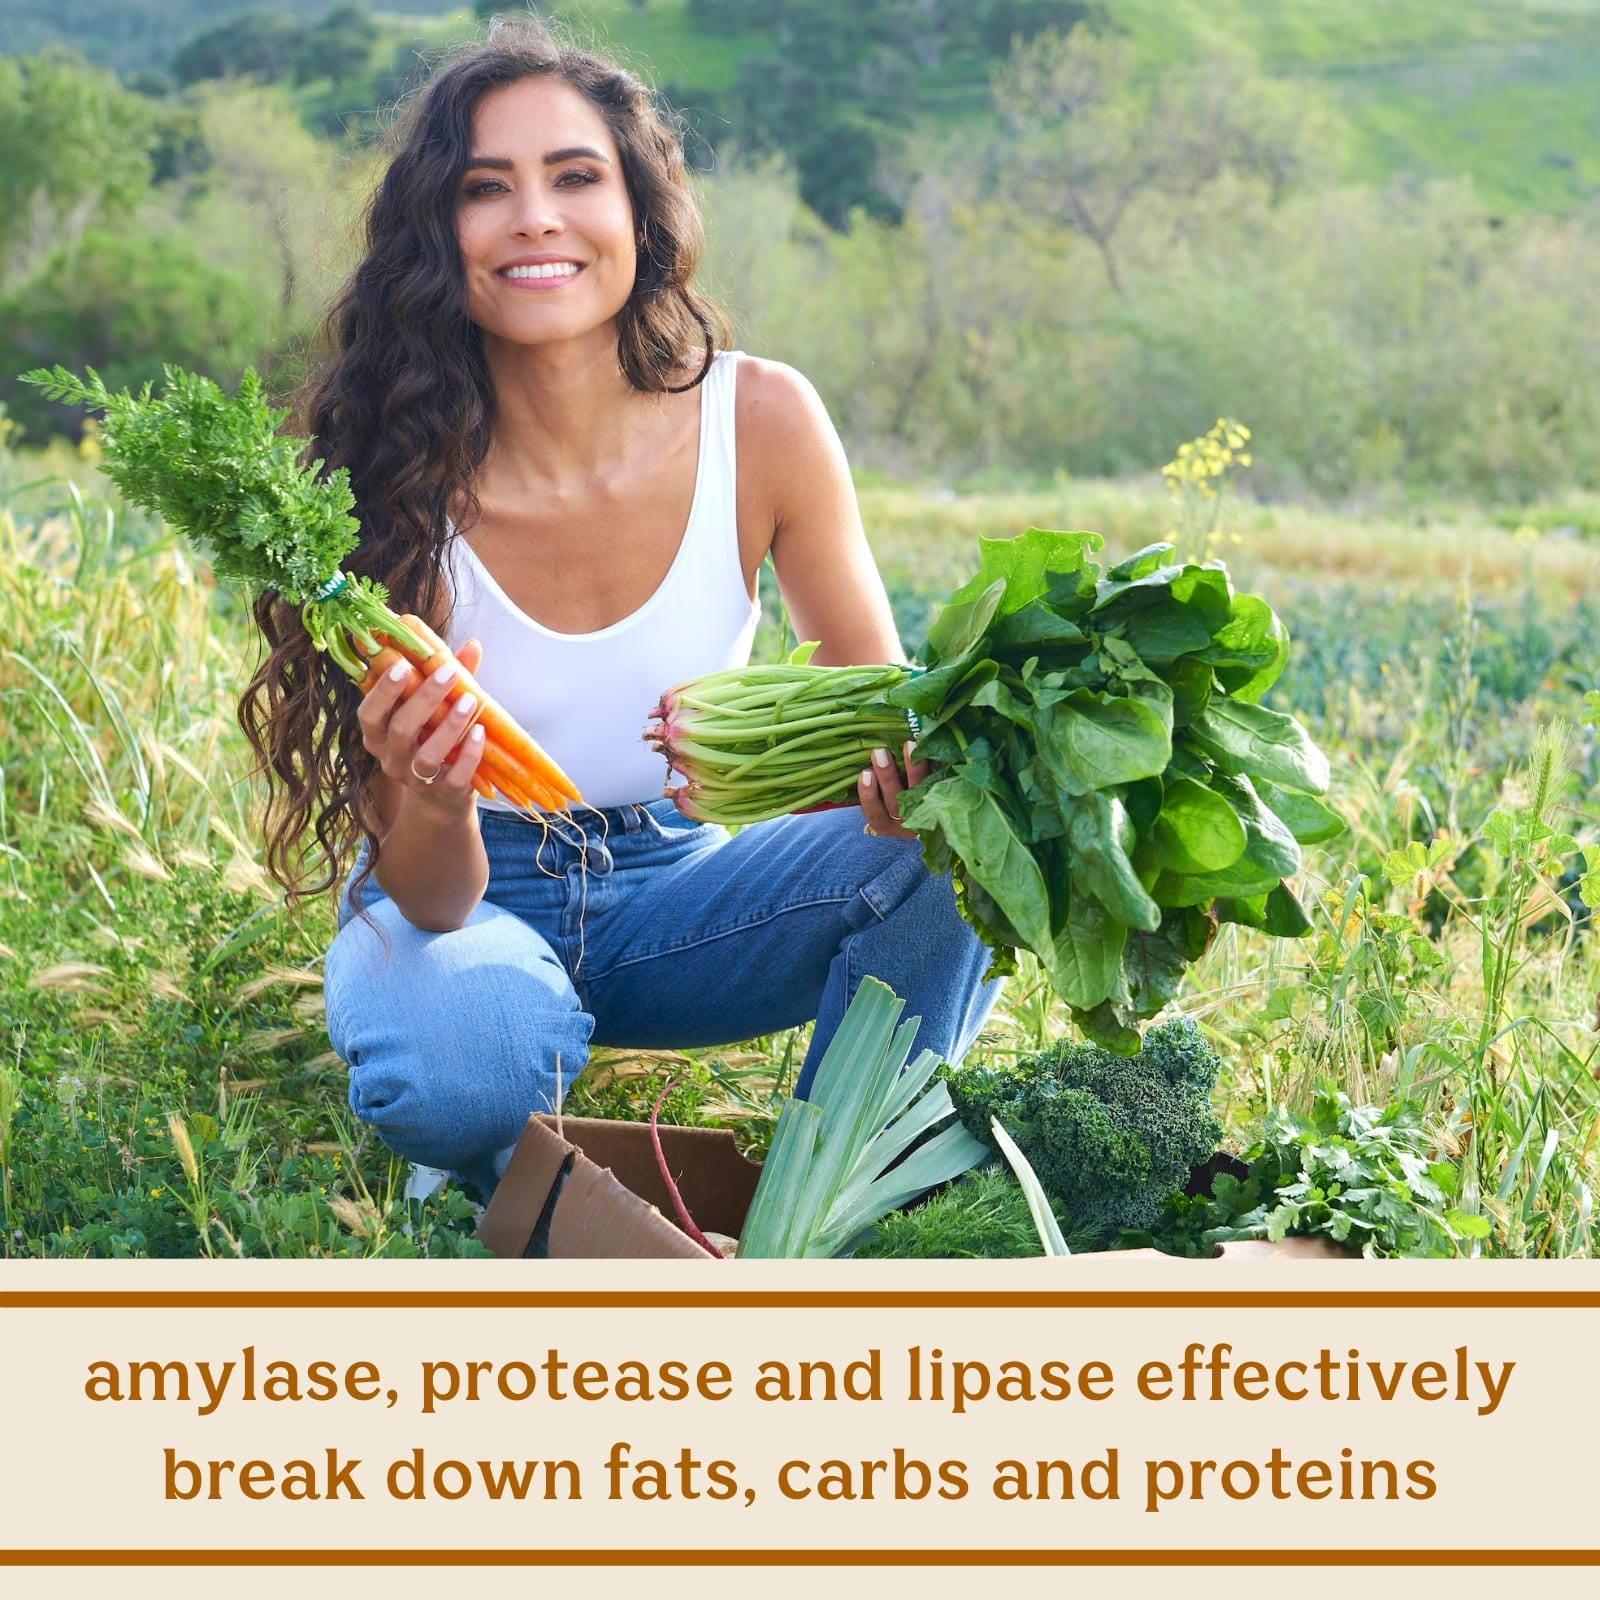 Solluna's Feel Good Digestive Enzymes key ingredient benefit description. Amylase, protease and lipase effectively break down fats, carbs and proteins